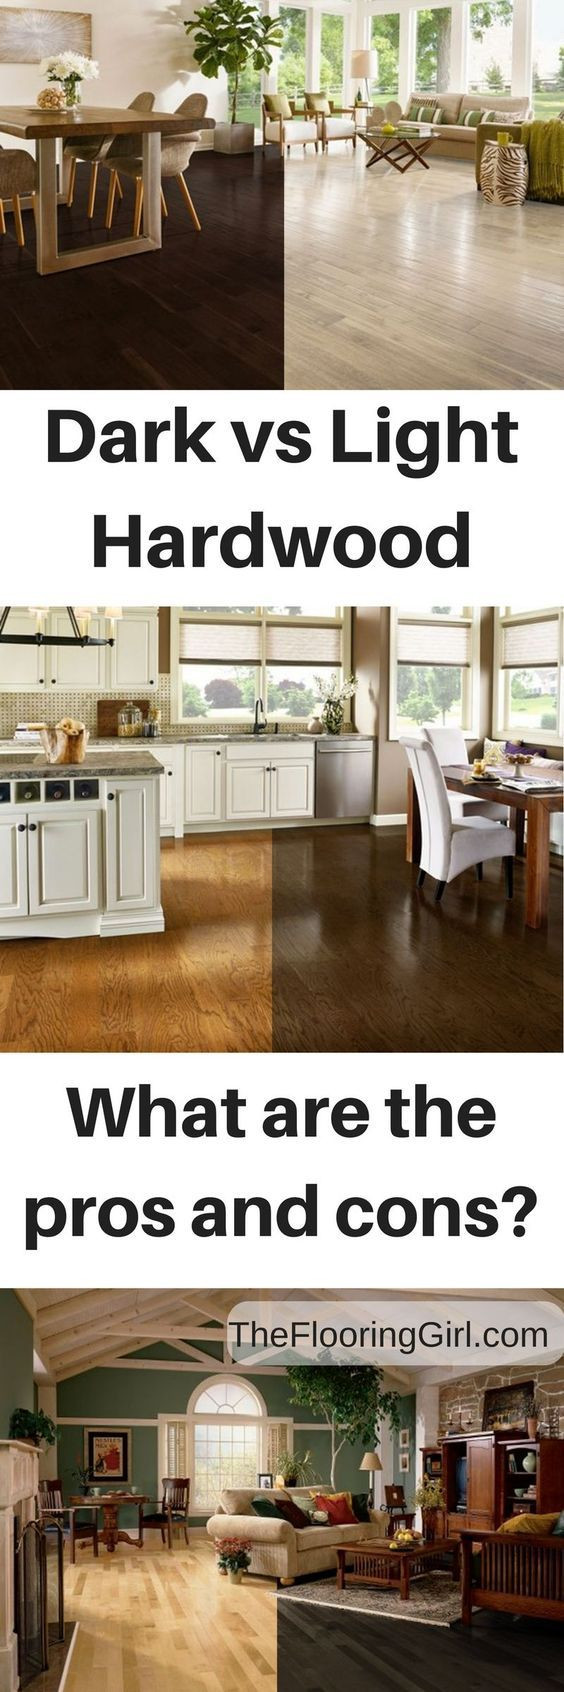 hand scraped hardwood flooring pros and cons of 276 best hardwood flooring images on pinterest flooring flooring in dark floors vs light floors pros and cons